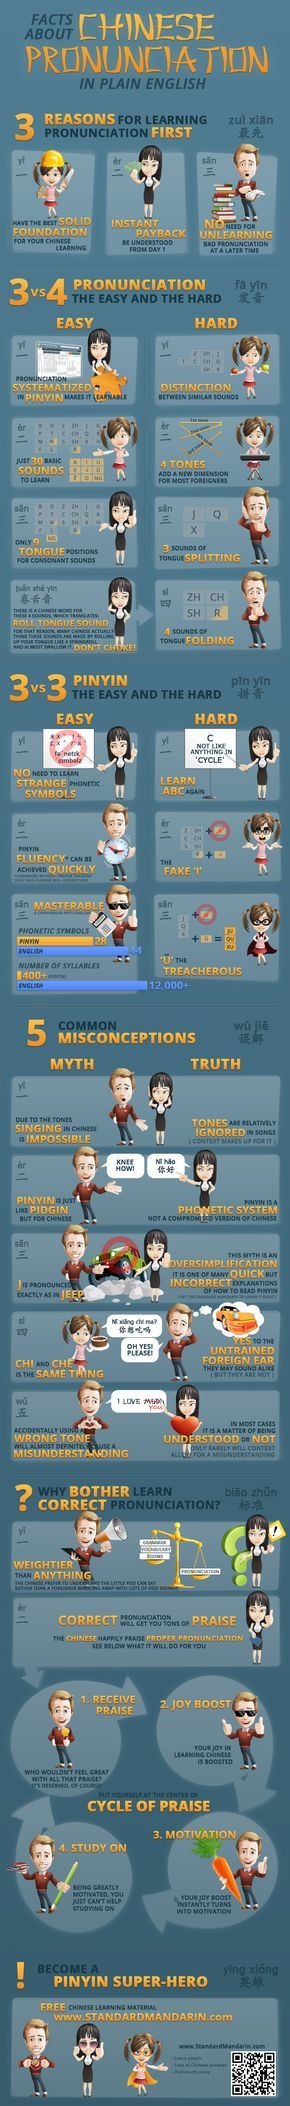 Tips about Chinese pronunciation. Infographic.